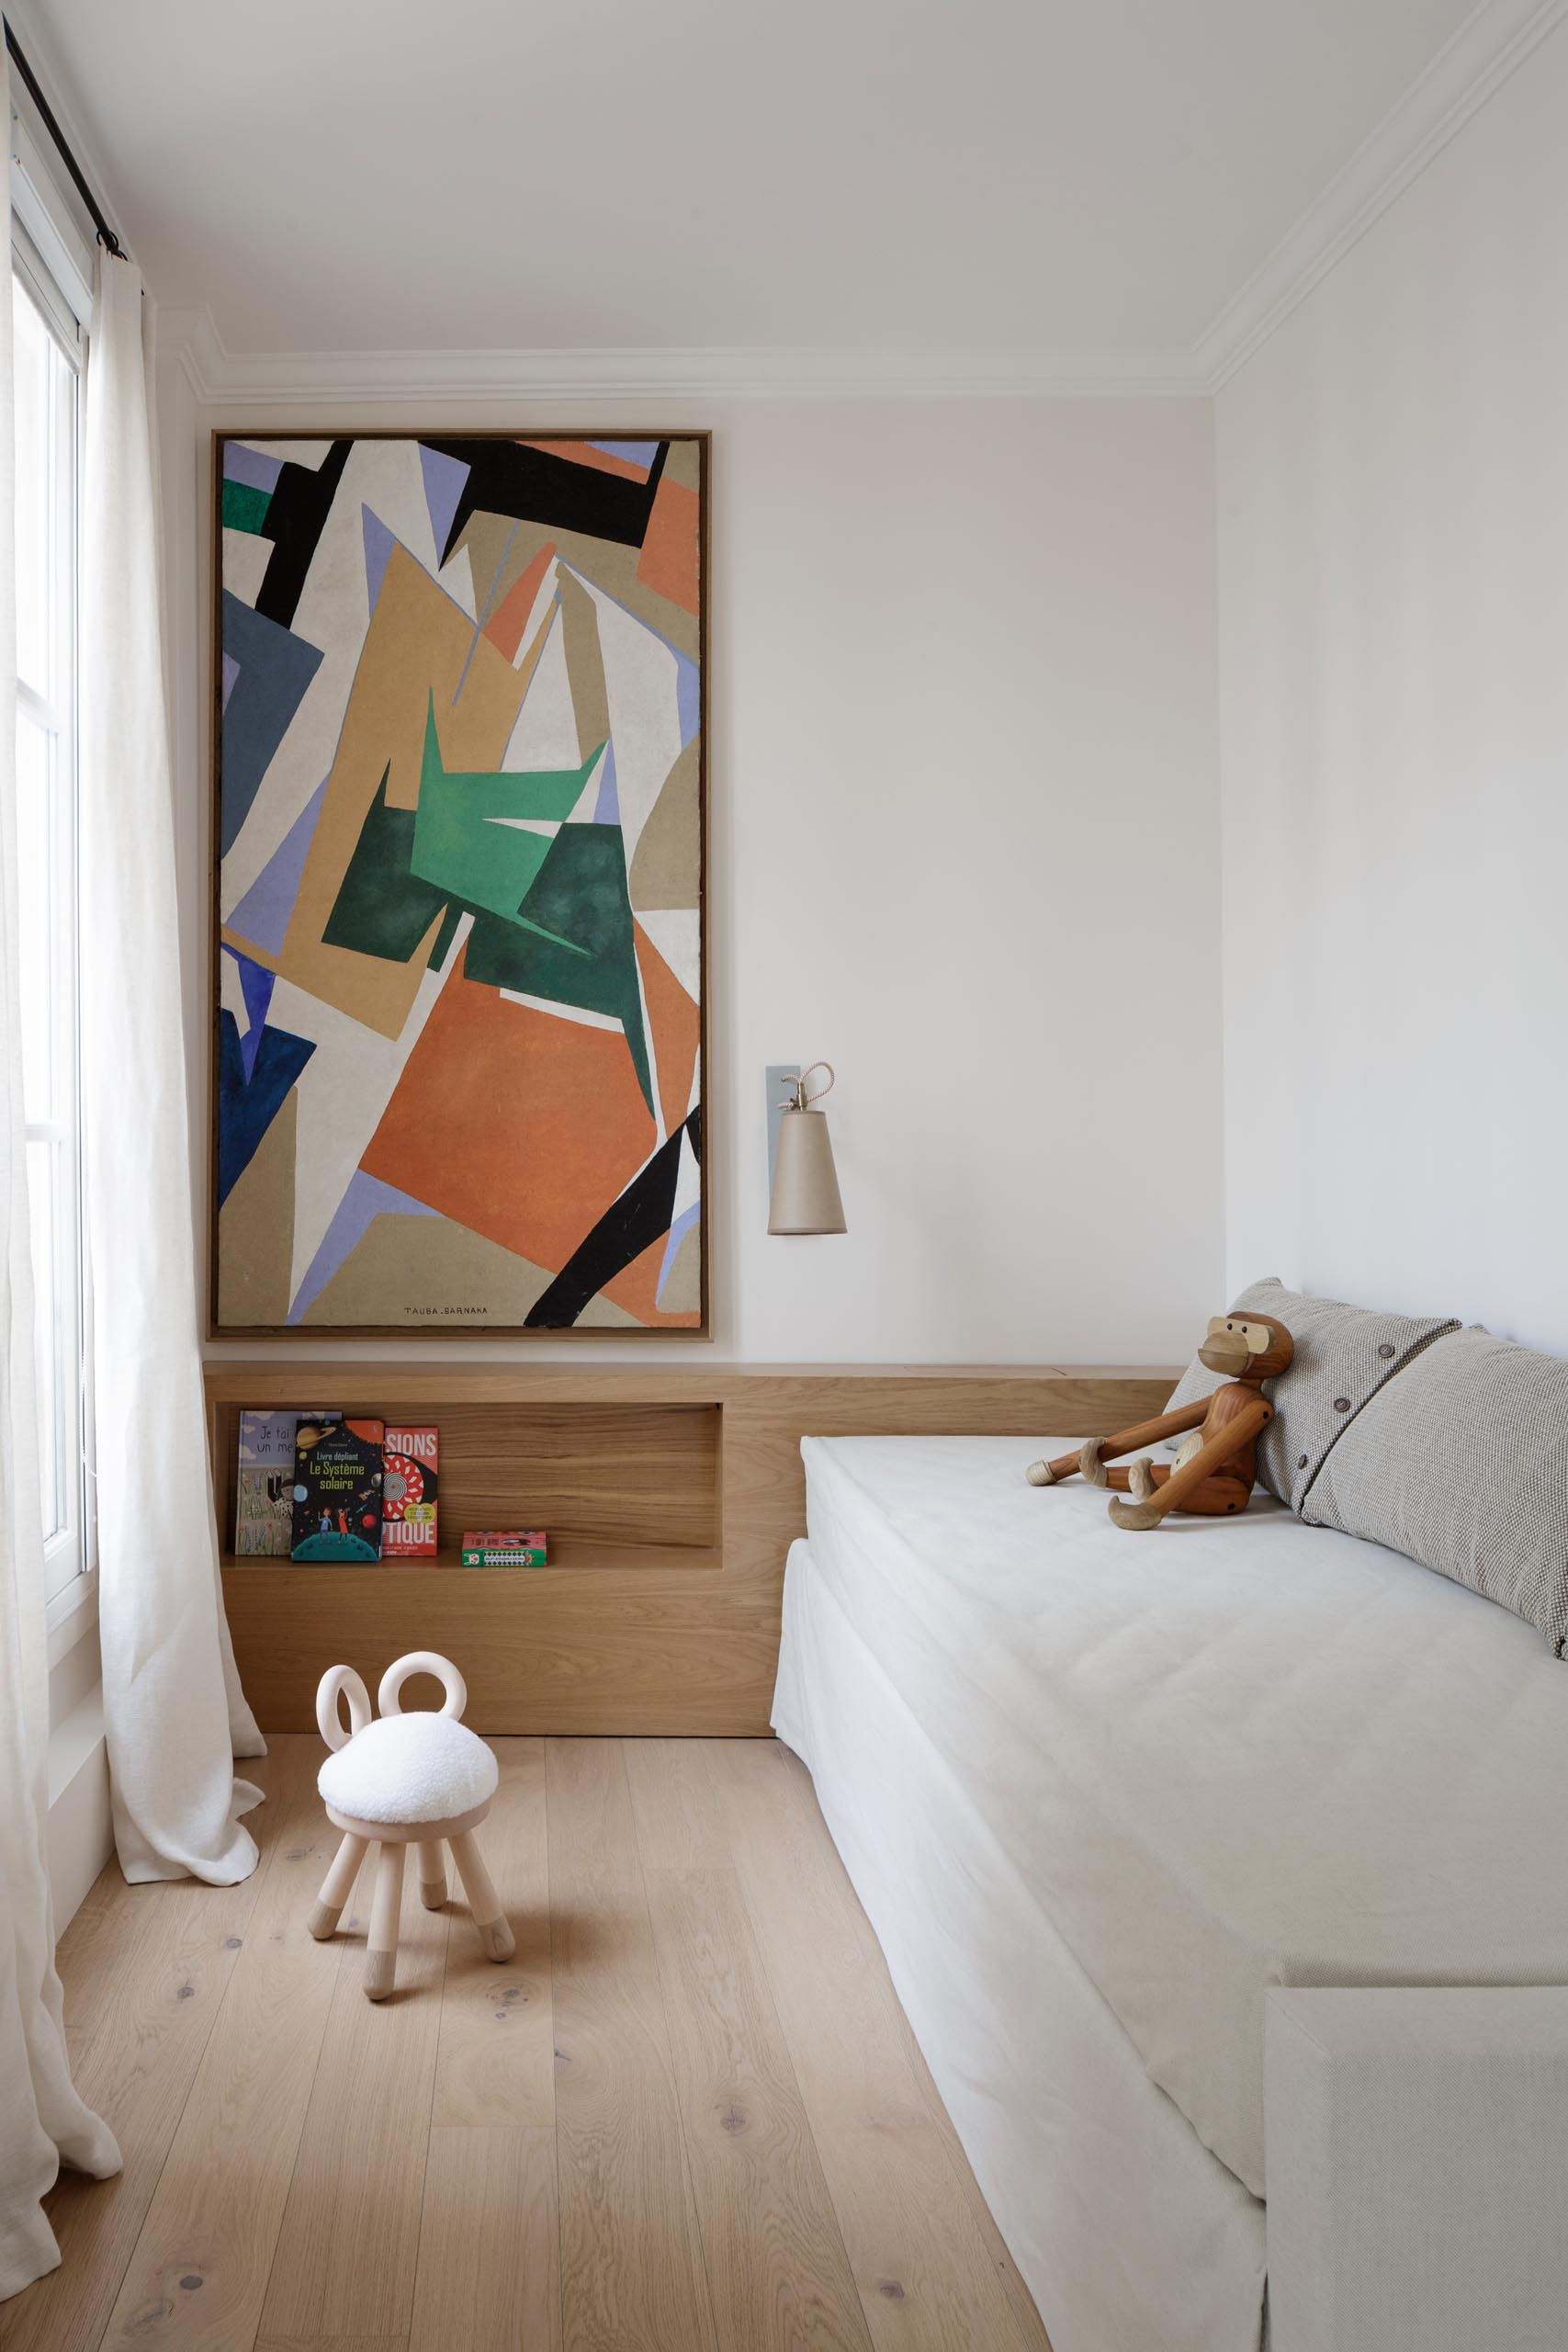 In this modern kids bedroom, calm colors have been paired with textures and artwork to create relaxed and cozy space.